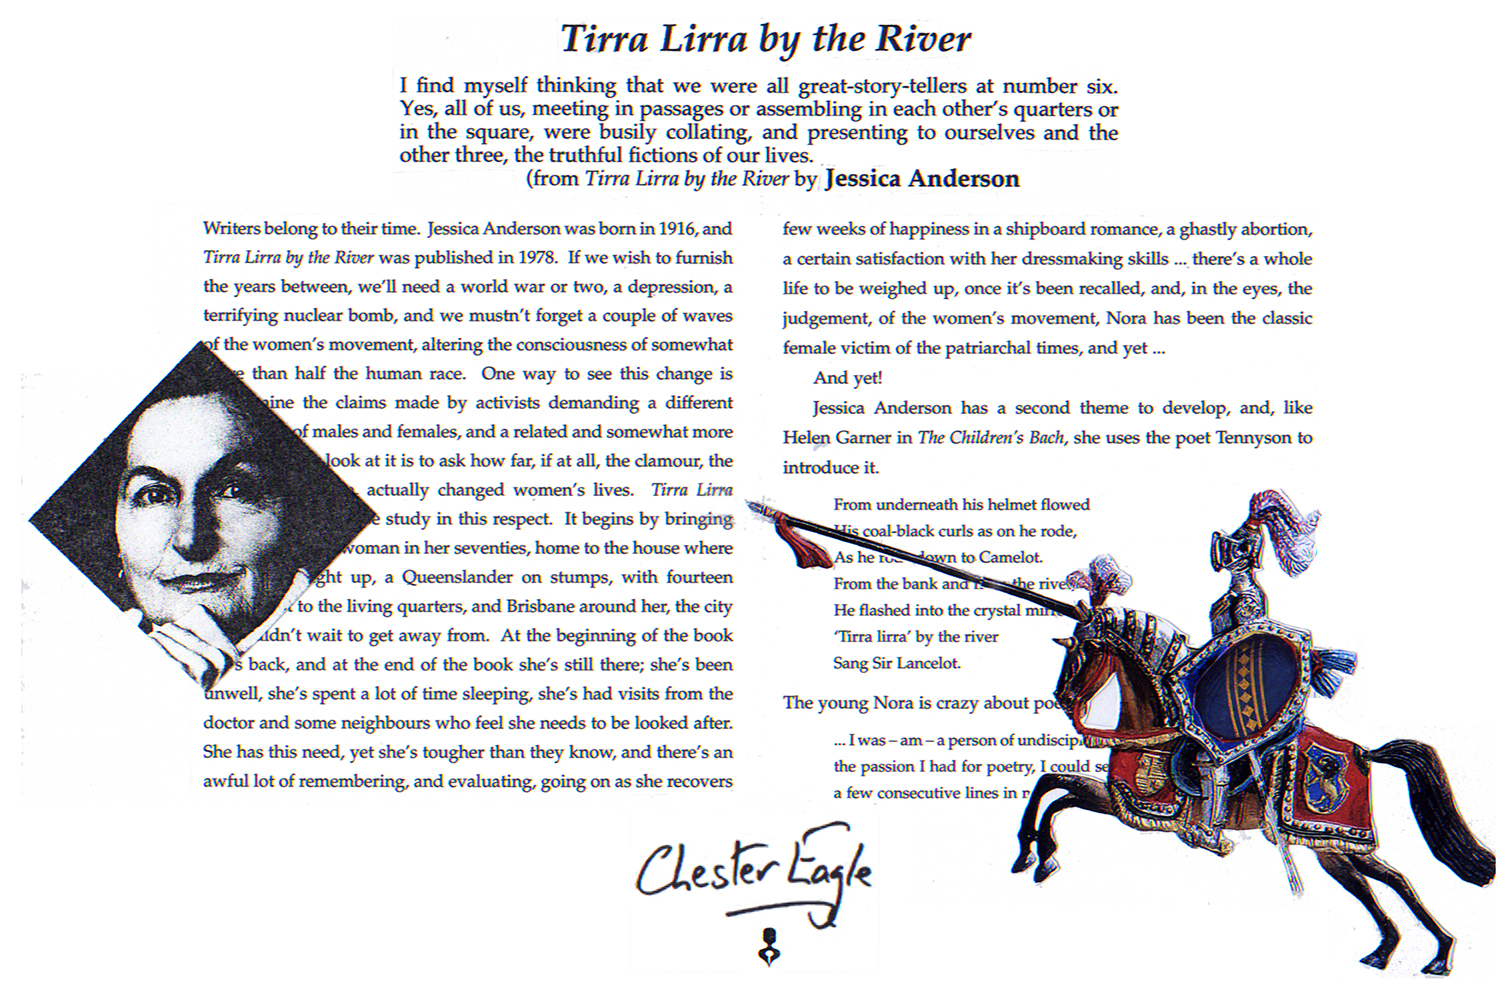 Tirra-Lirra-By-The-River-cover-01